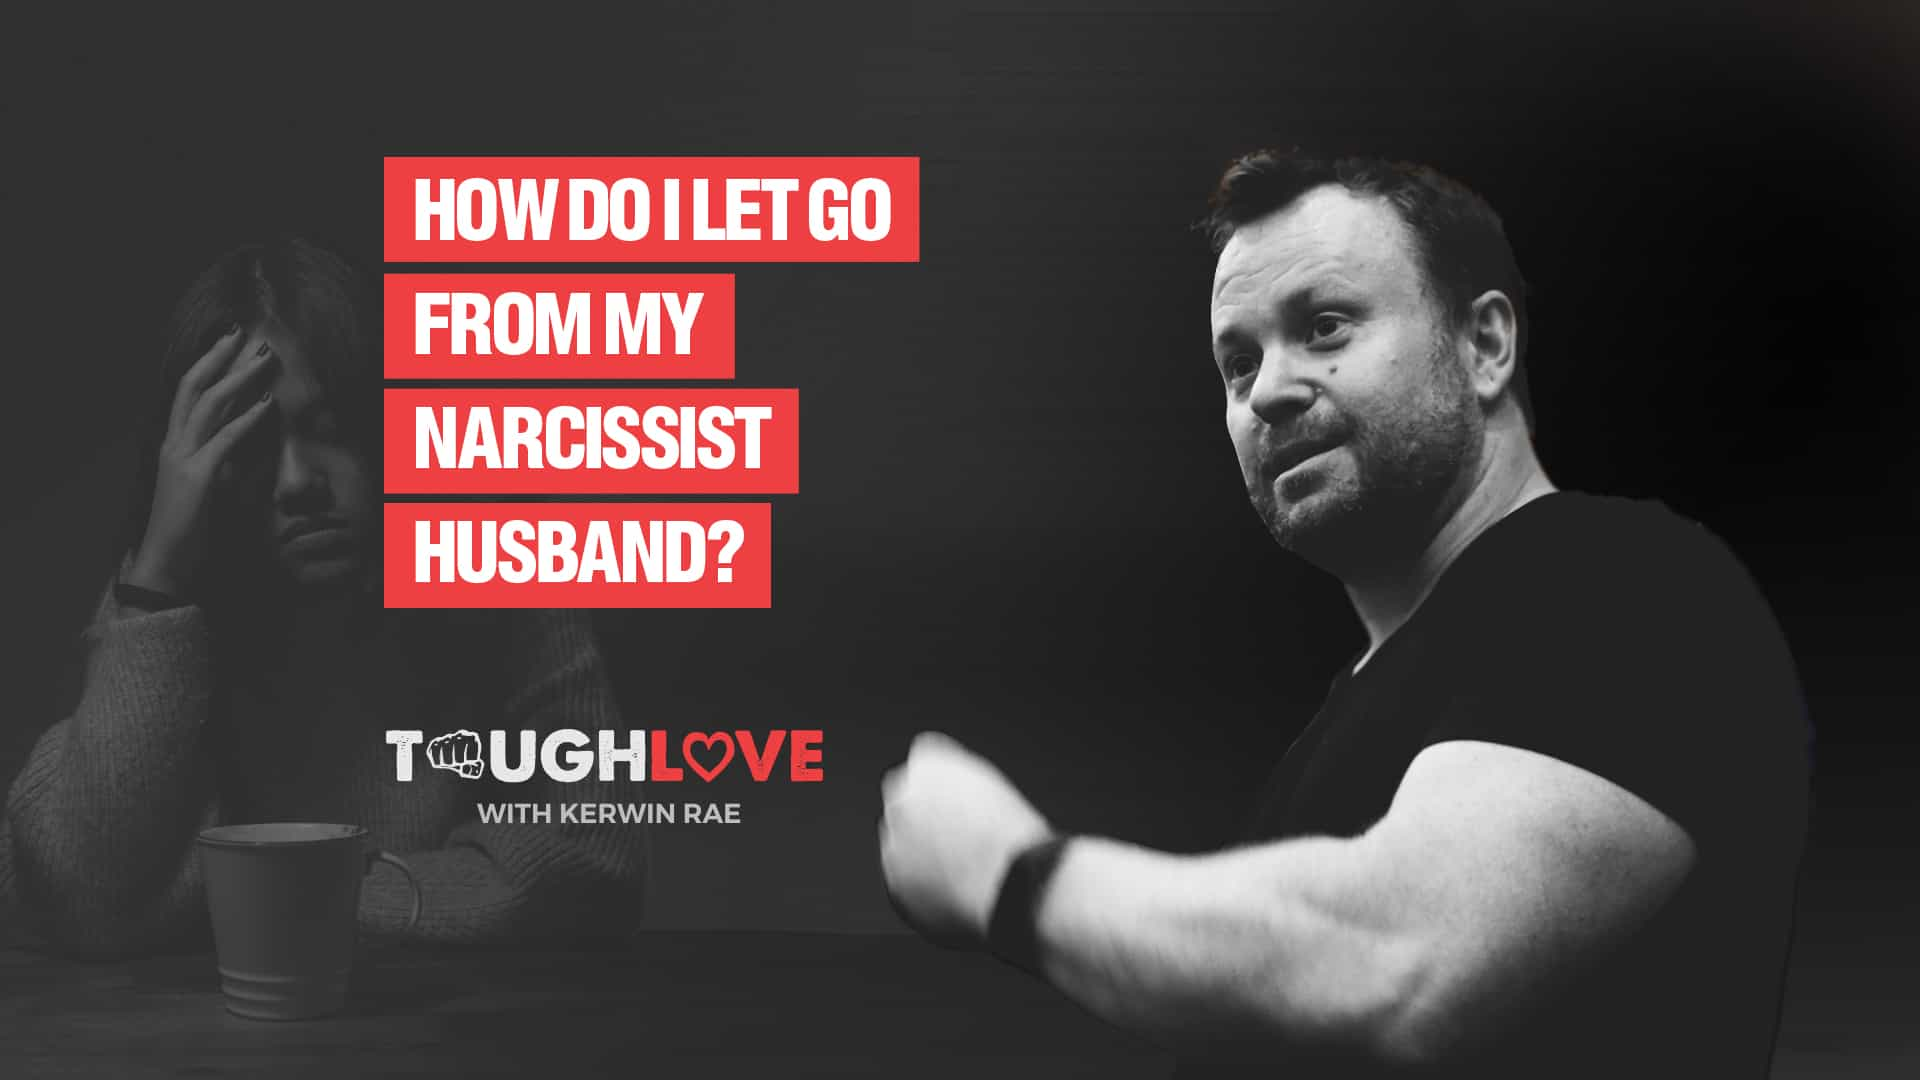 How do I let go from my narcissist husband?